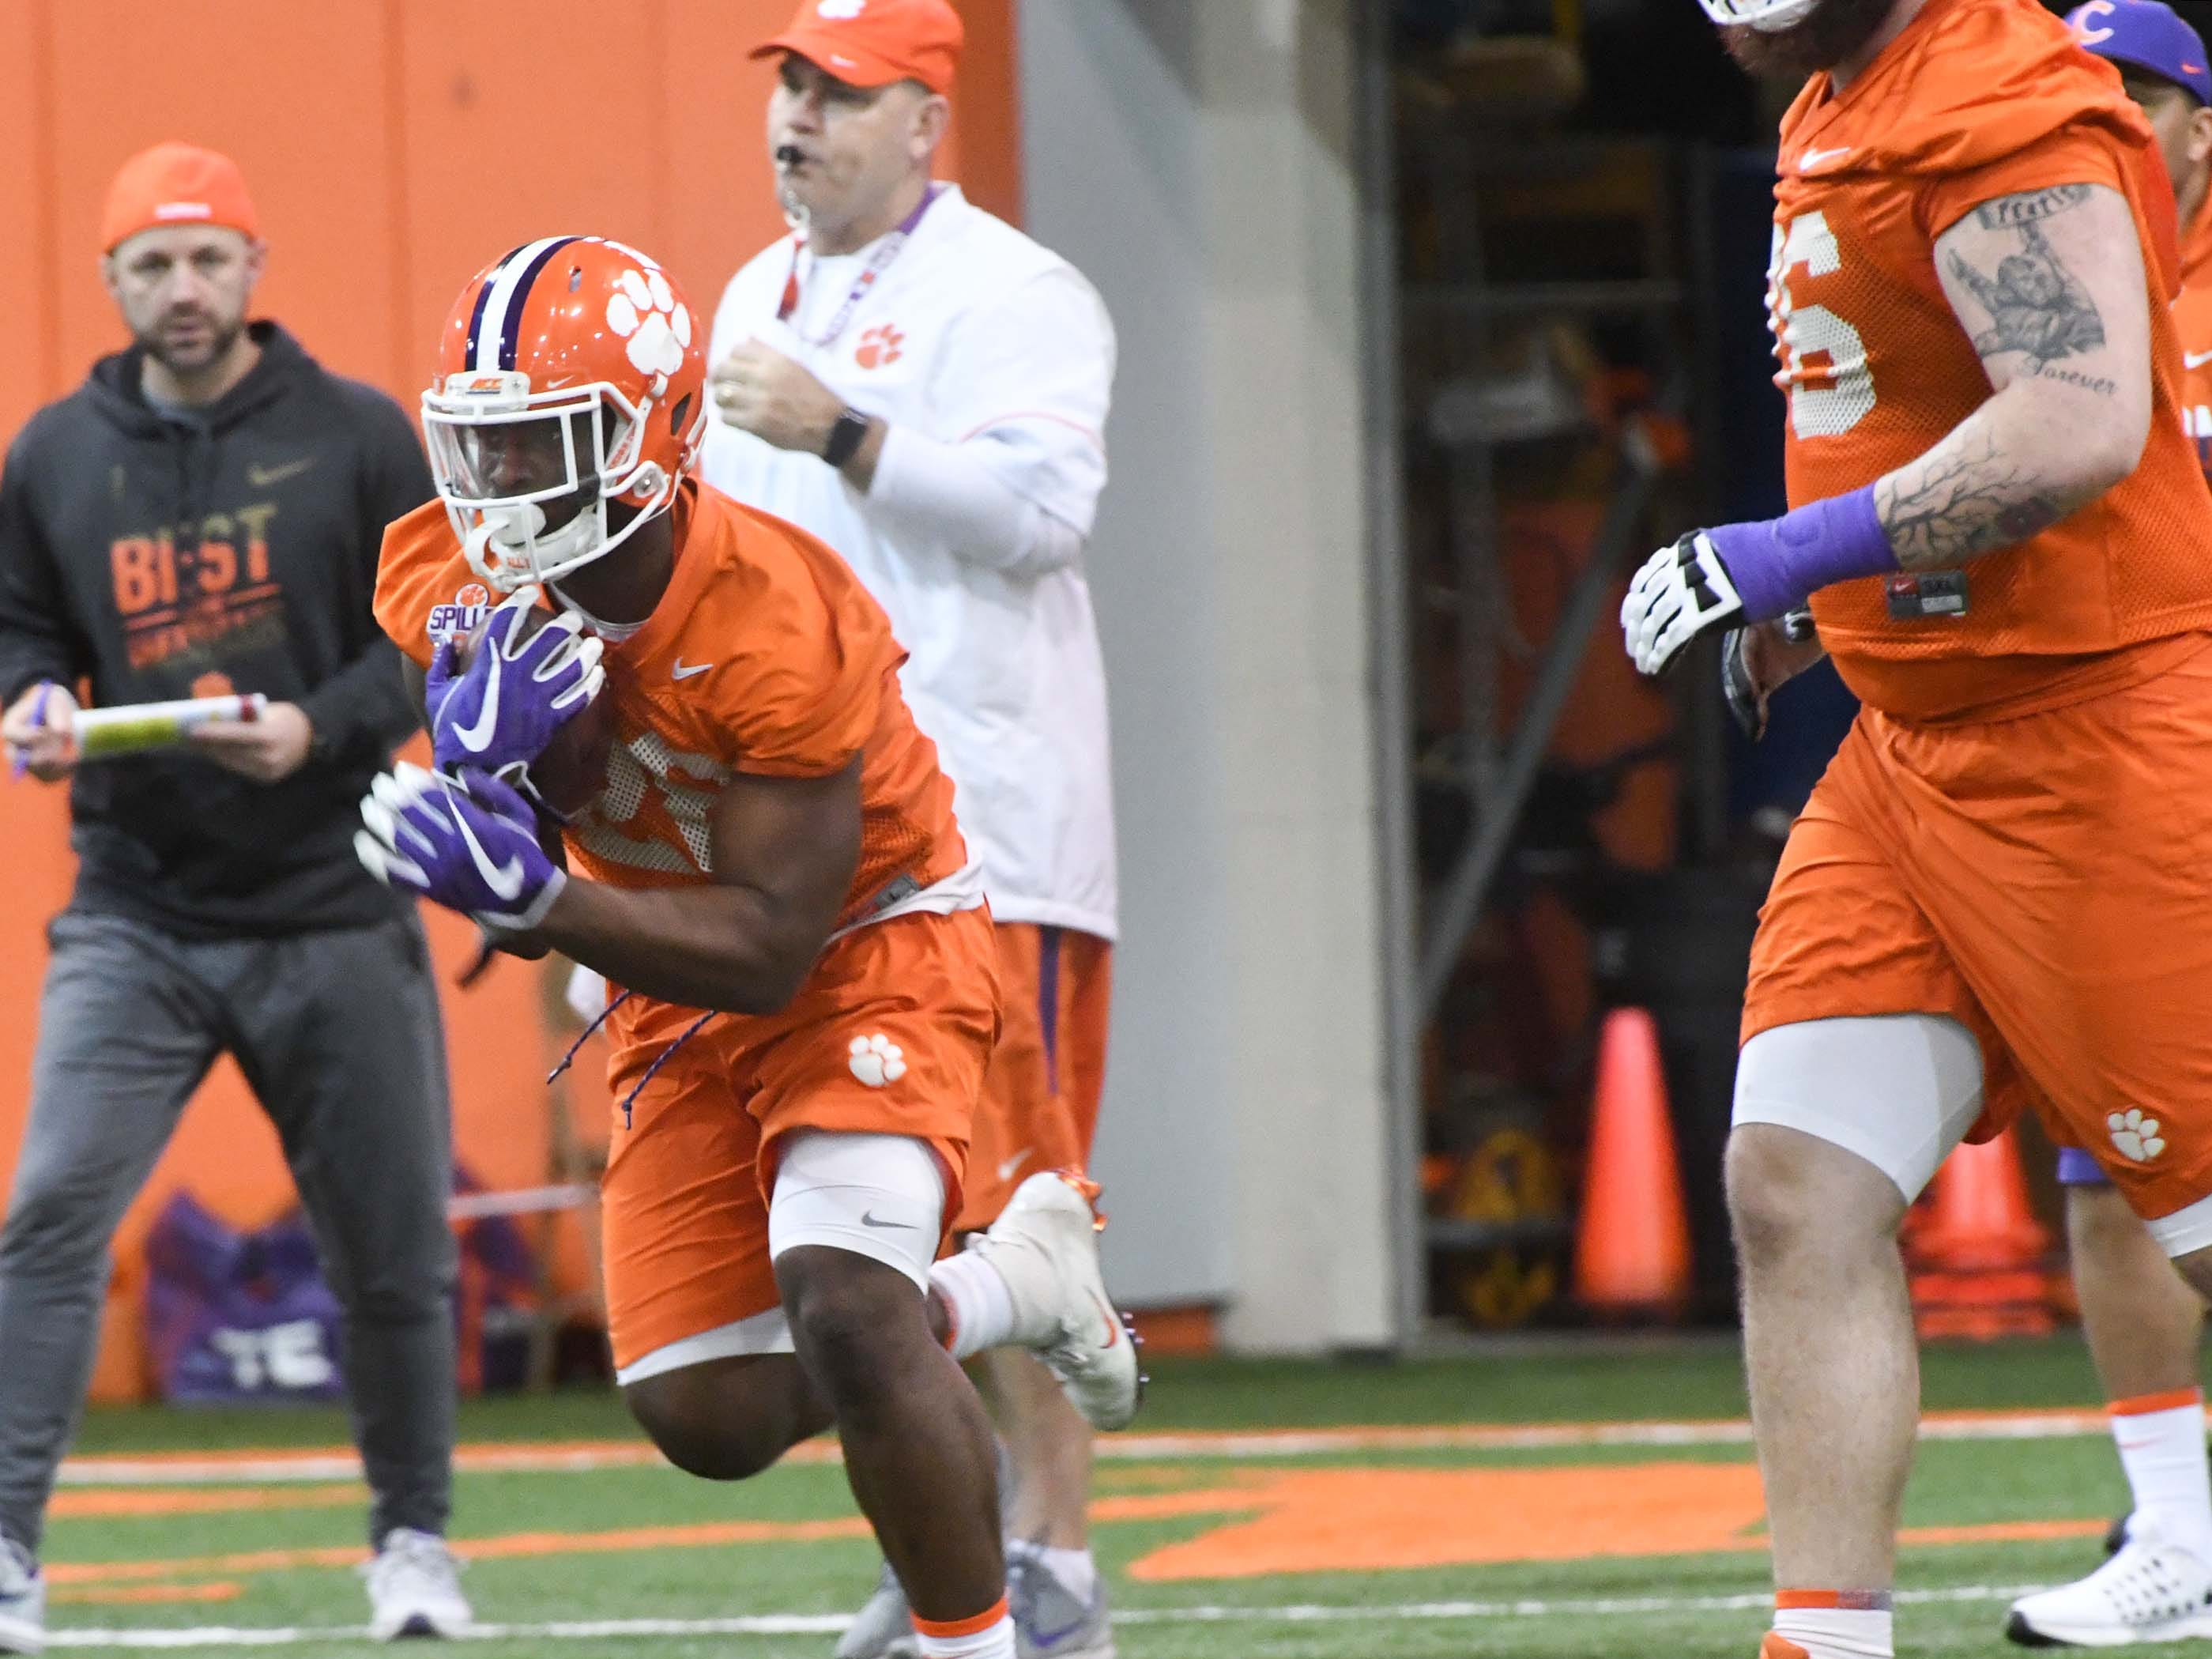 Clemson running back Tavien Feaster (28) runs during practice at the Poe Indoor Facility in Clemson Friday.